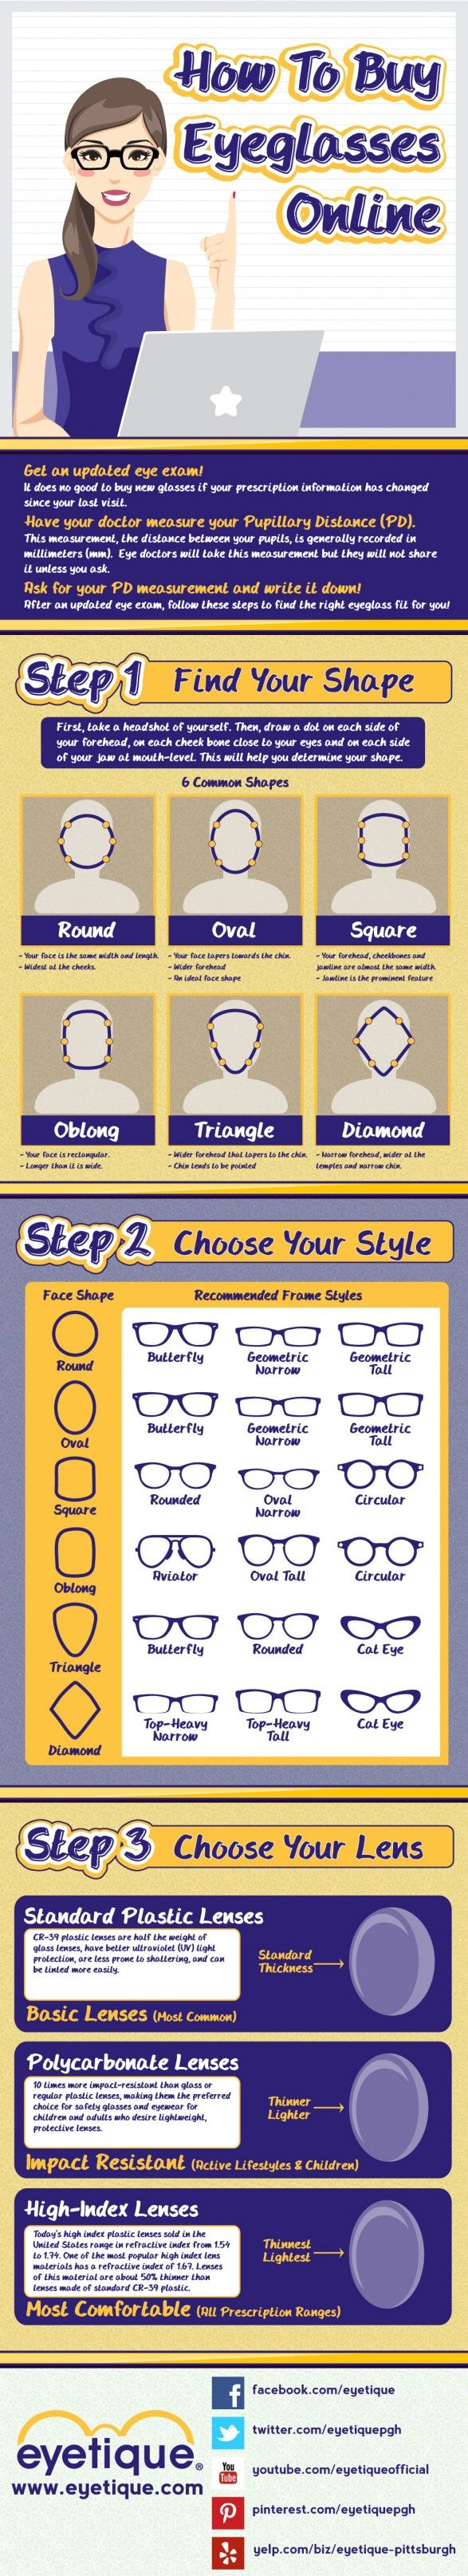 How to buy eyeglasses online - You can find some of the best eyewear savings and style availability online. Here are a few guidelines for helping anyone order the right eyeglasses online. For more info http://www.eyetique.com/blogeyetique/infographic-how-to-buy-eyeglasses-online